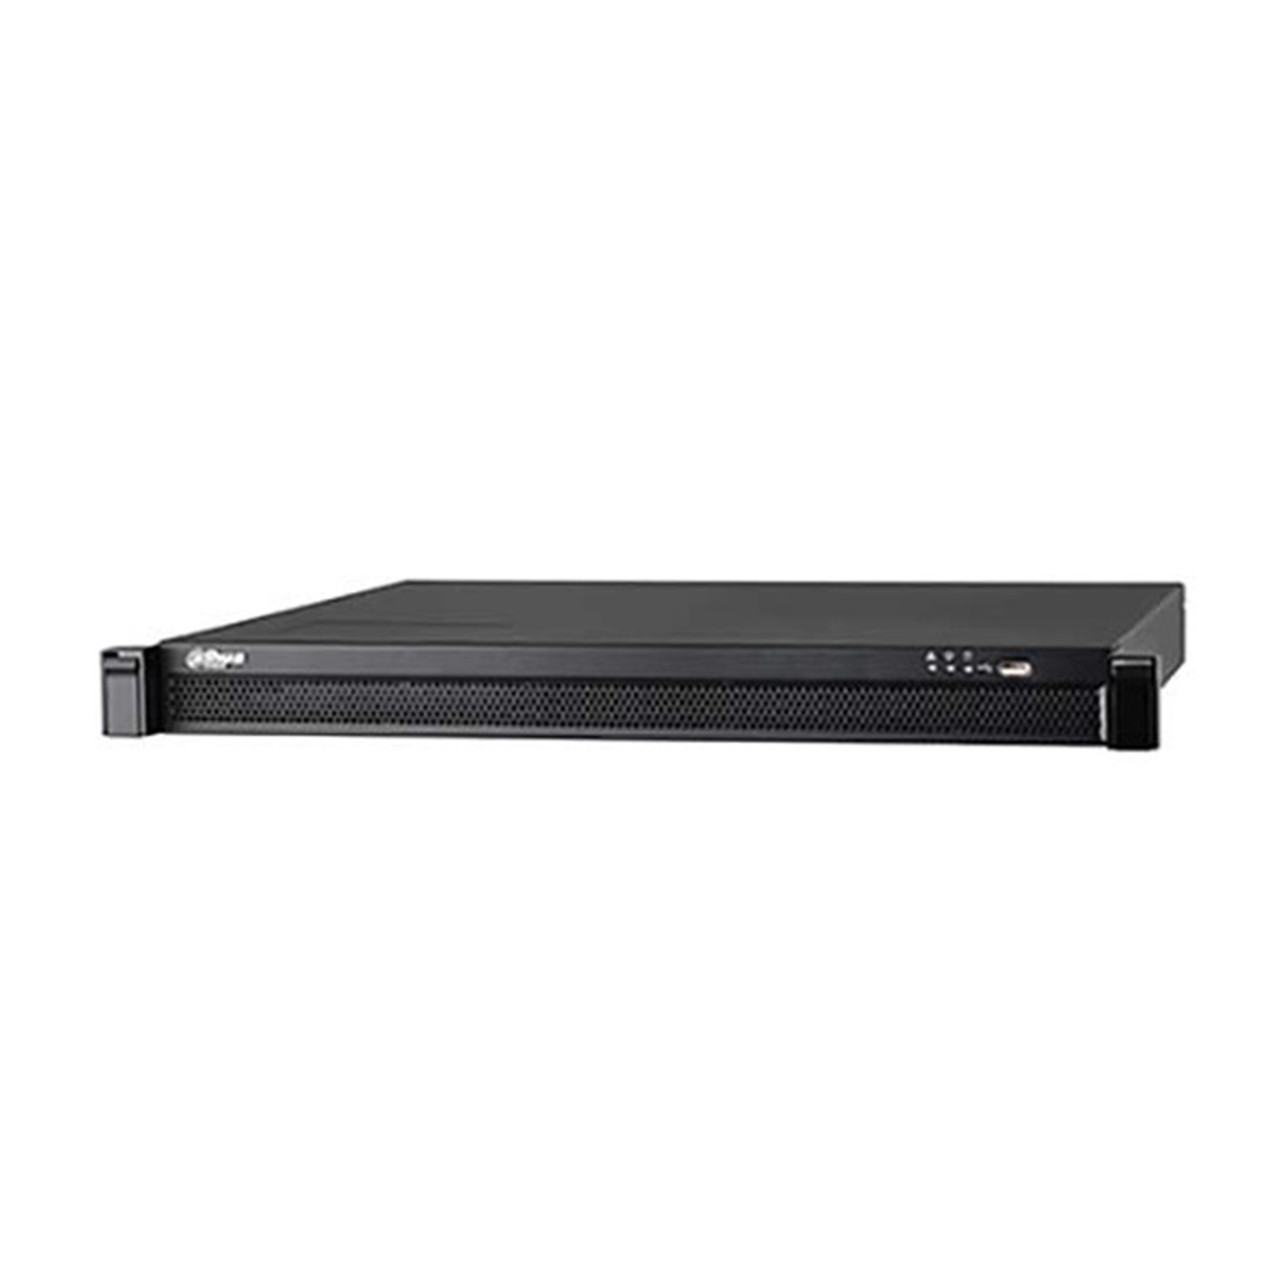 Dahua N52A4P 24 Channel 4K Network Video Recorder - No HDD included